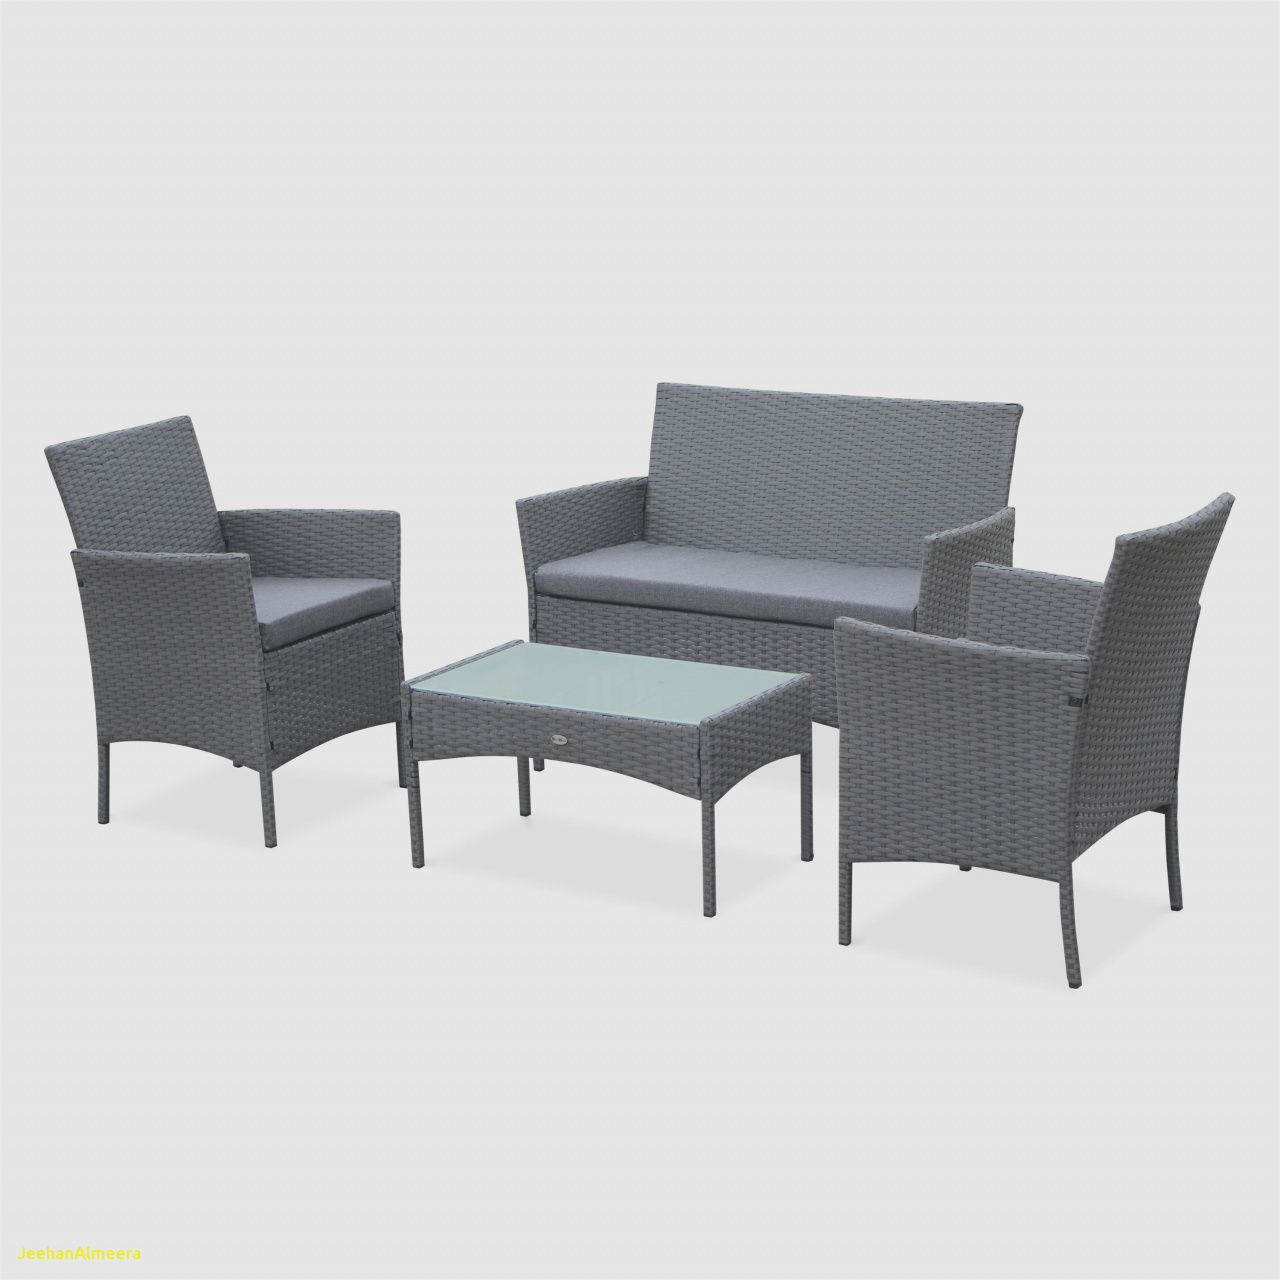 55 Abri De Jardin Carrefour Check More At Https Southfloridasalon Com 201 Abri De Jardin Carrefour Outdoor Furniture Sets Outdoor Chairs Furniture